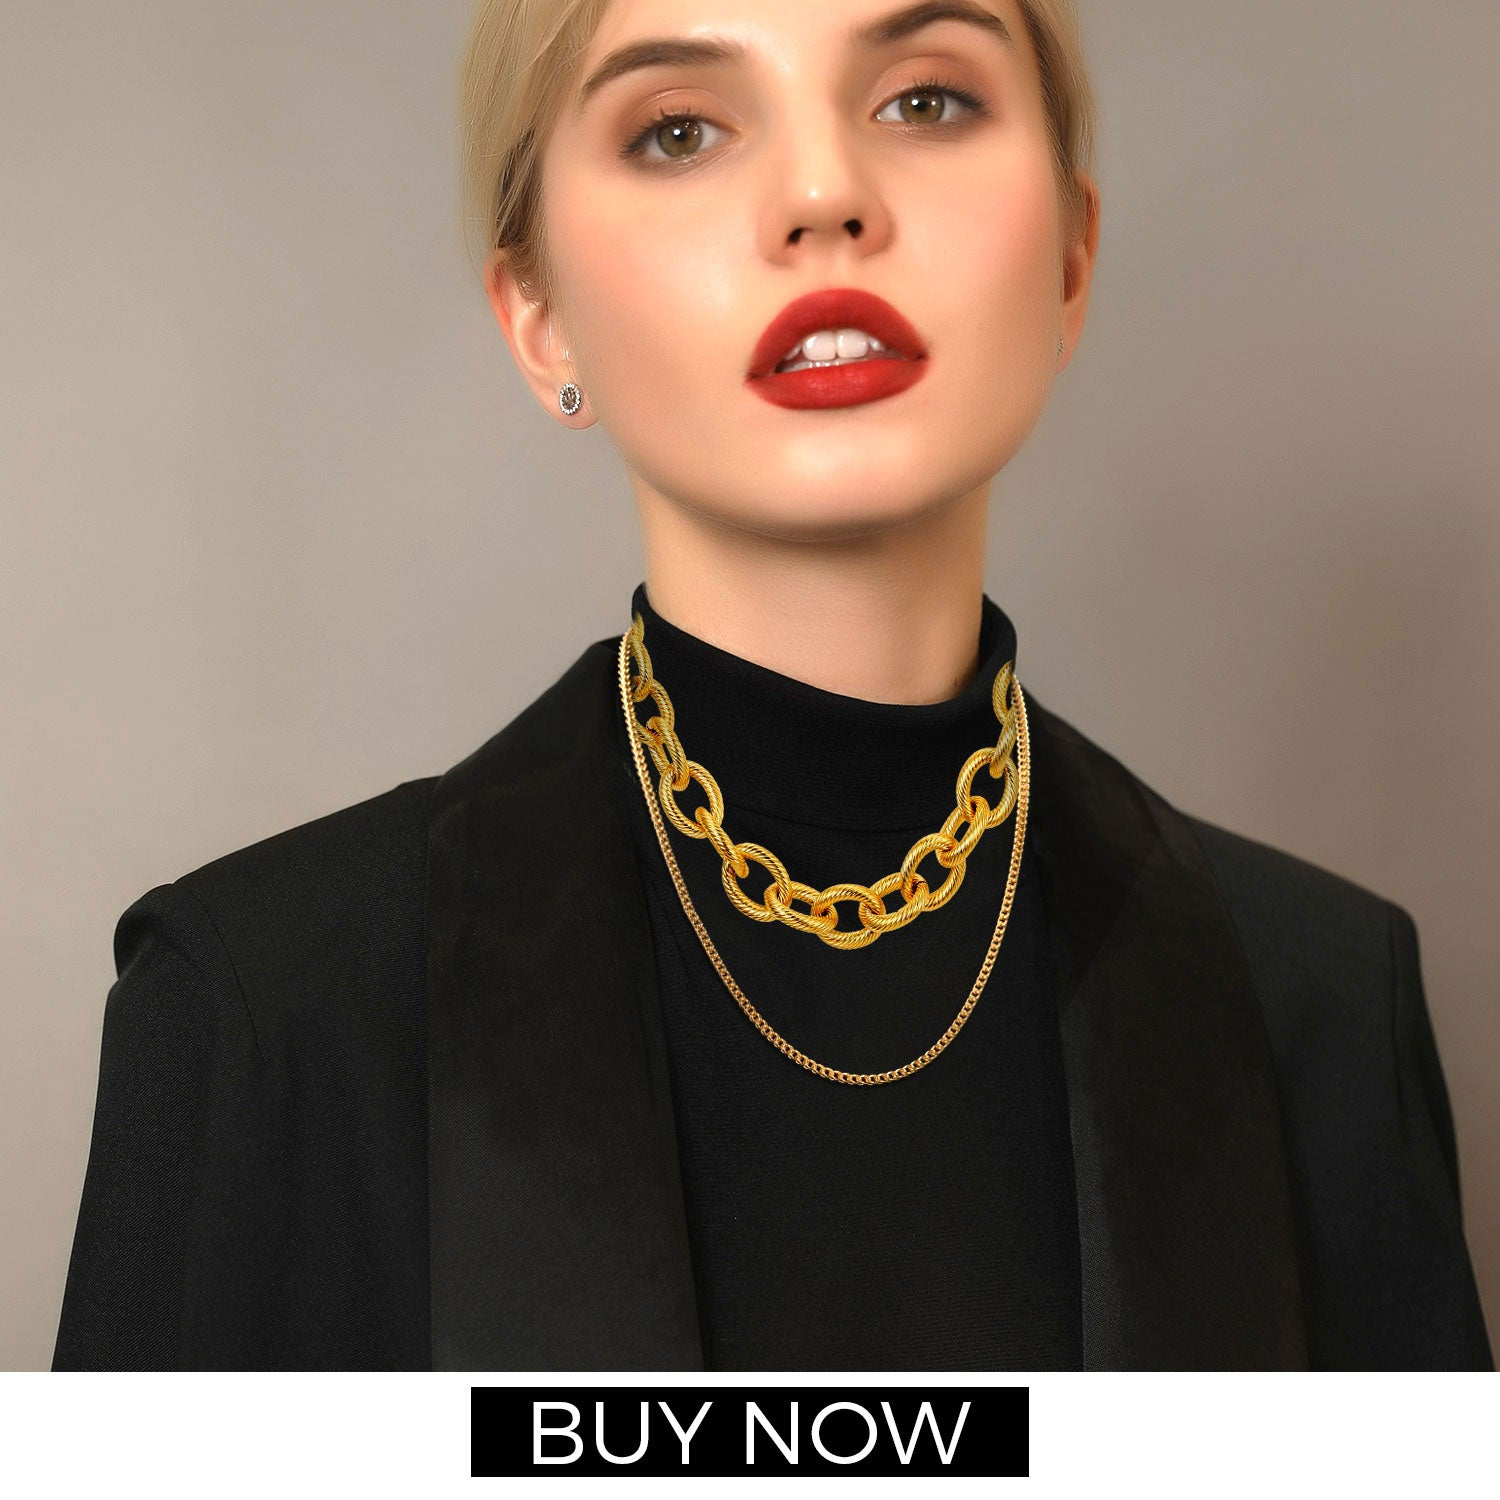 Sleek Chic Cable Gold Chain Necklace For Men Women 18K Gold Plated